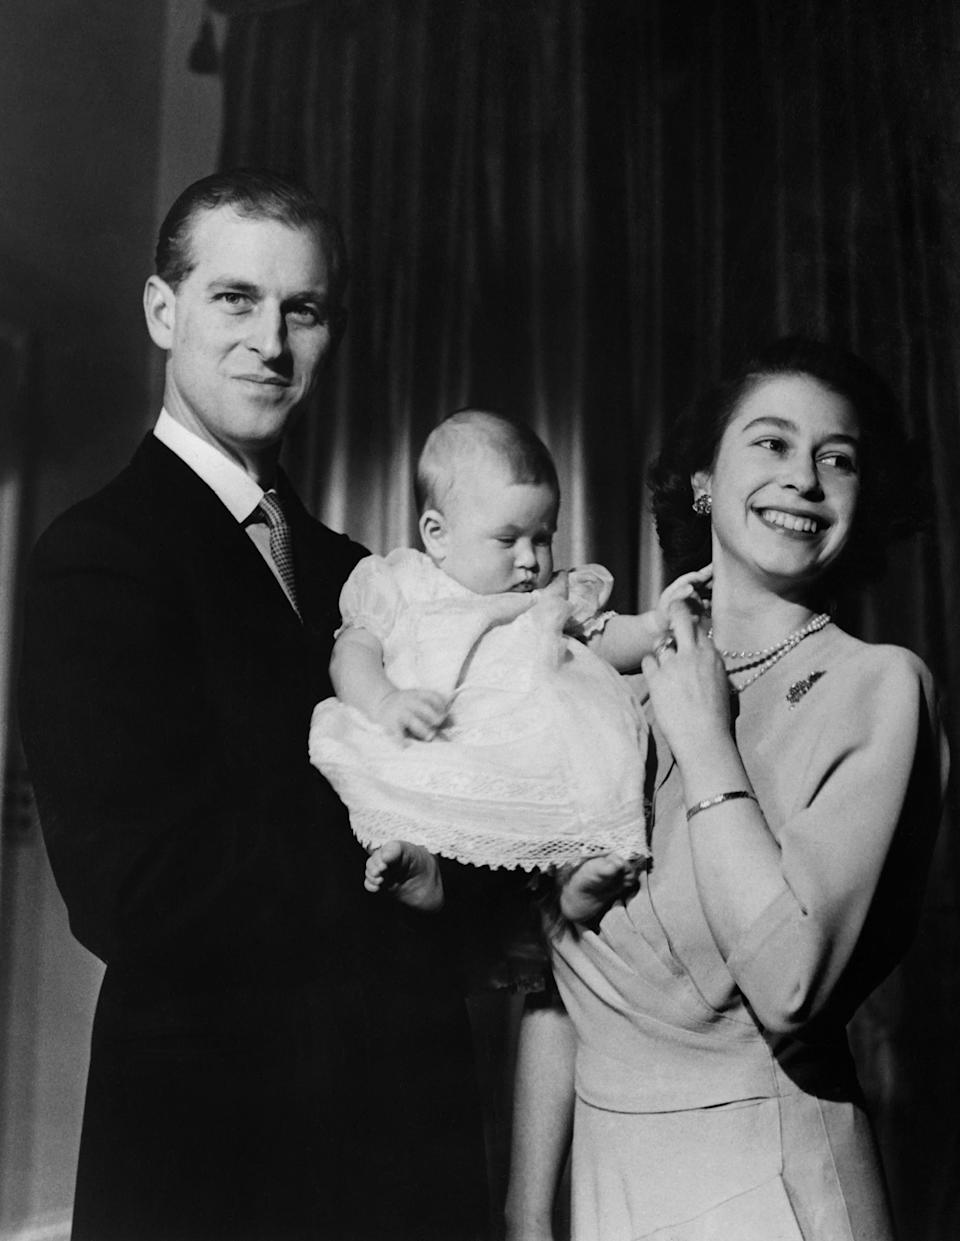 Posing with their son, Prince Charles. [Photo: Getty]